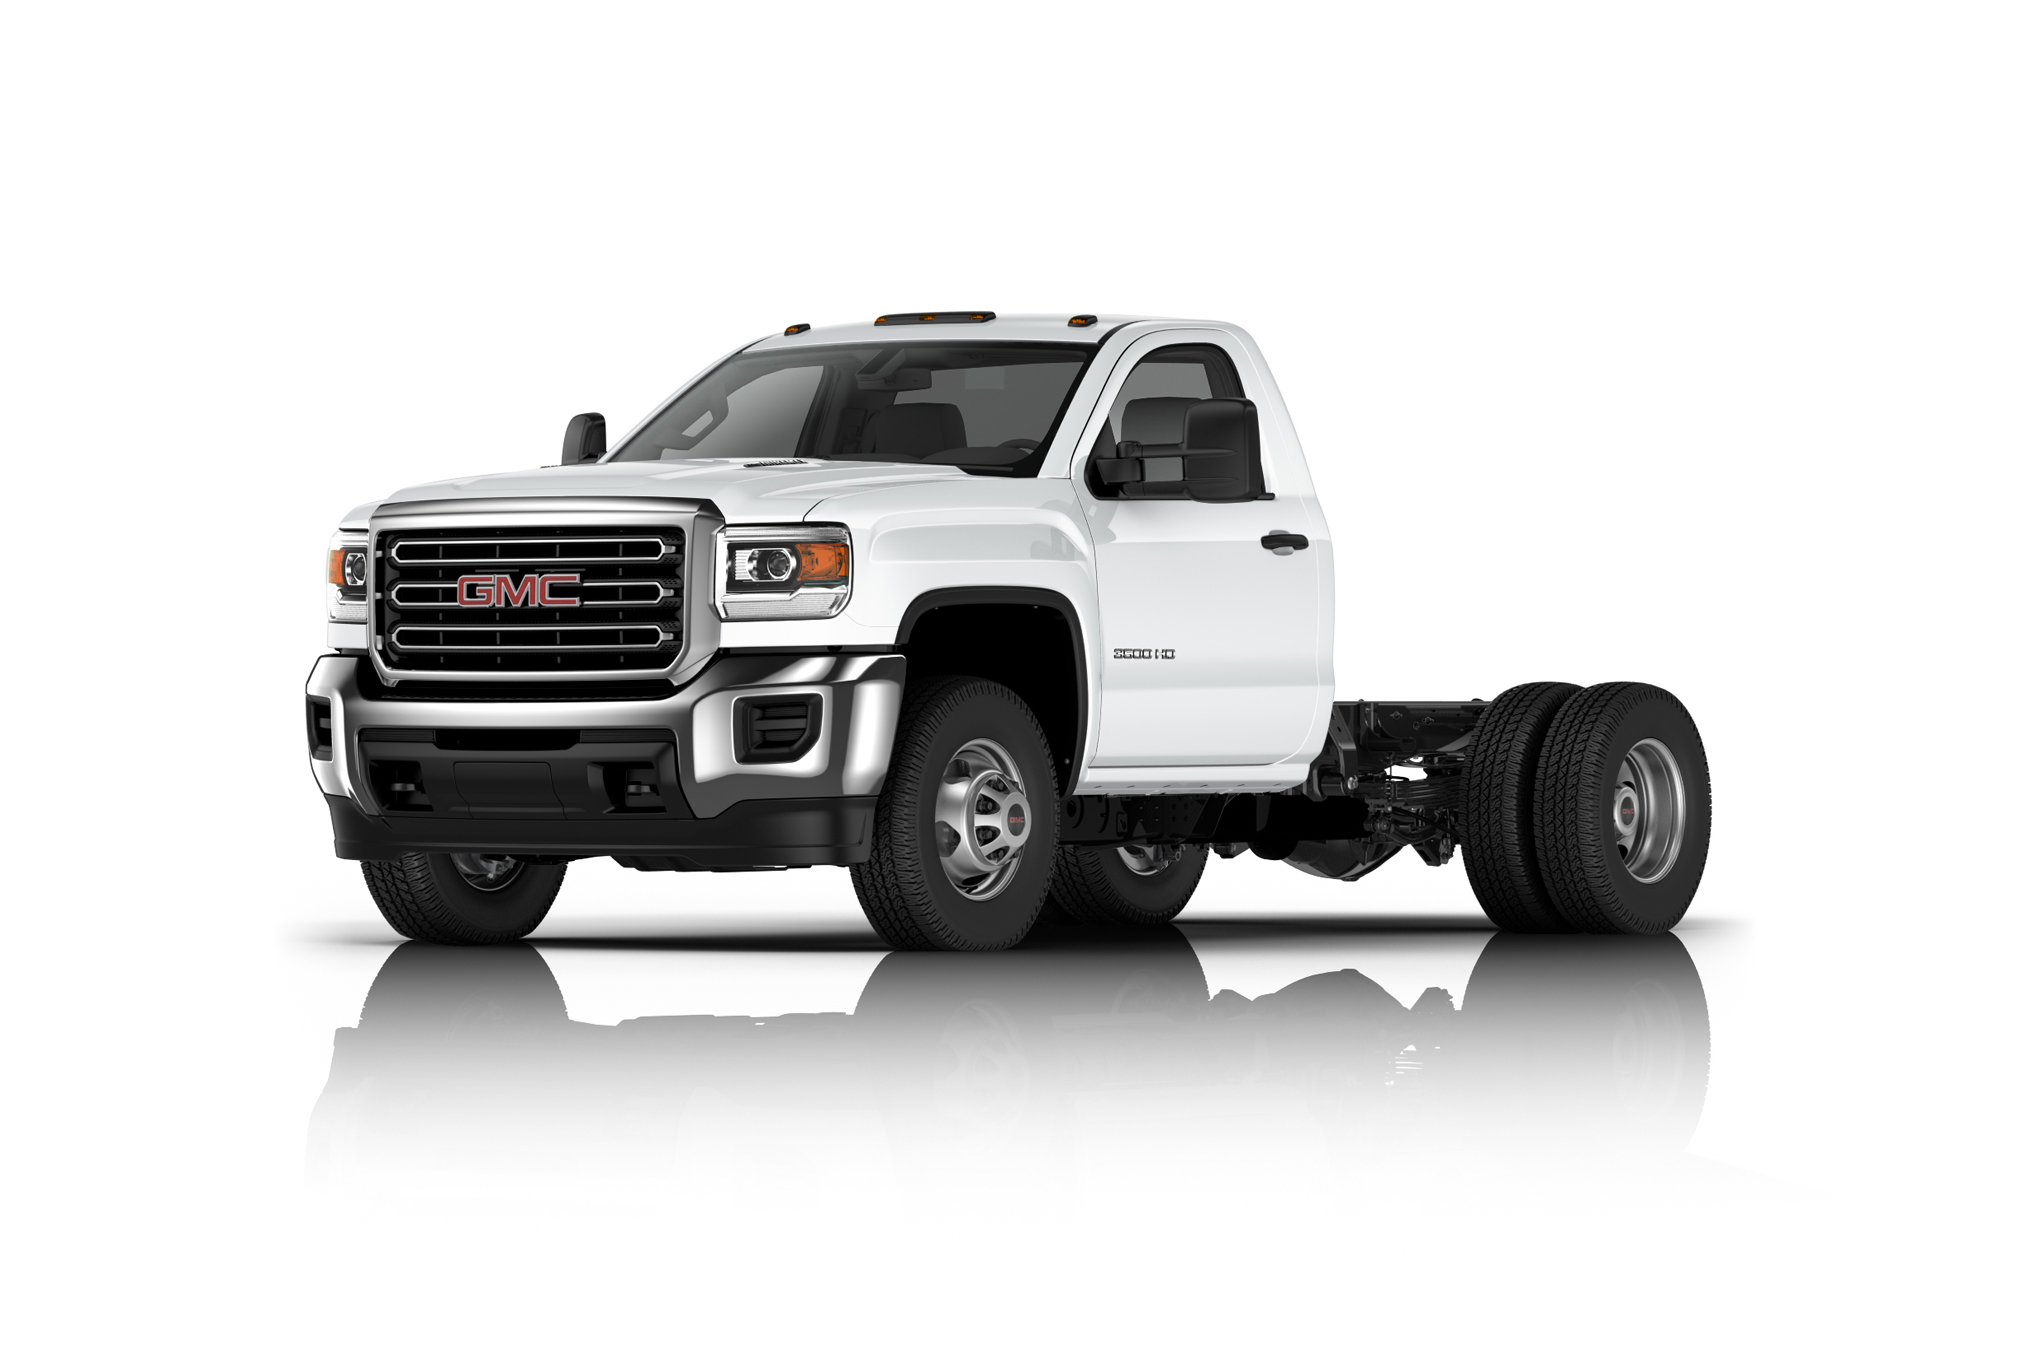 2016 gmc sierra 3500 chassis cab 2wd regular cab chassis specs and features msn autos. Black Bedroom Furniture Sets. Home Design Ideas